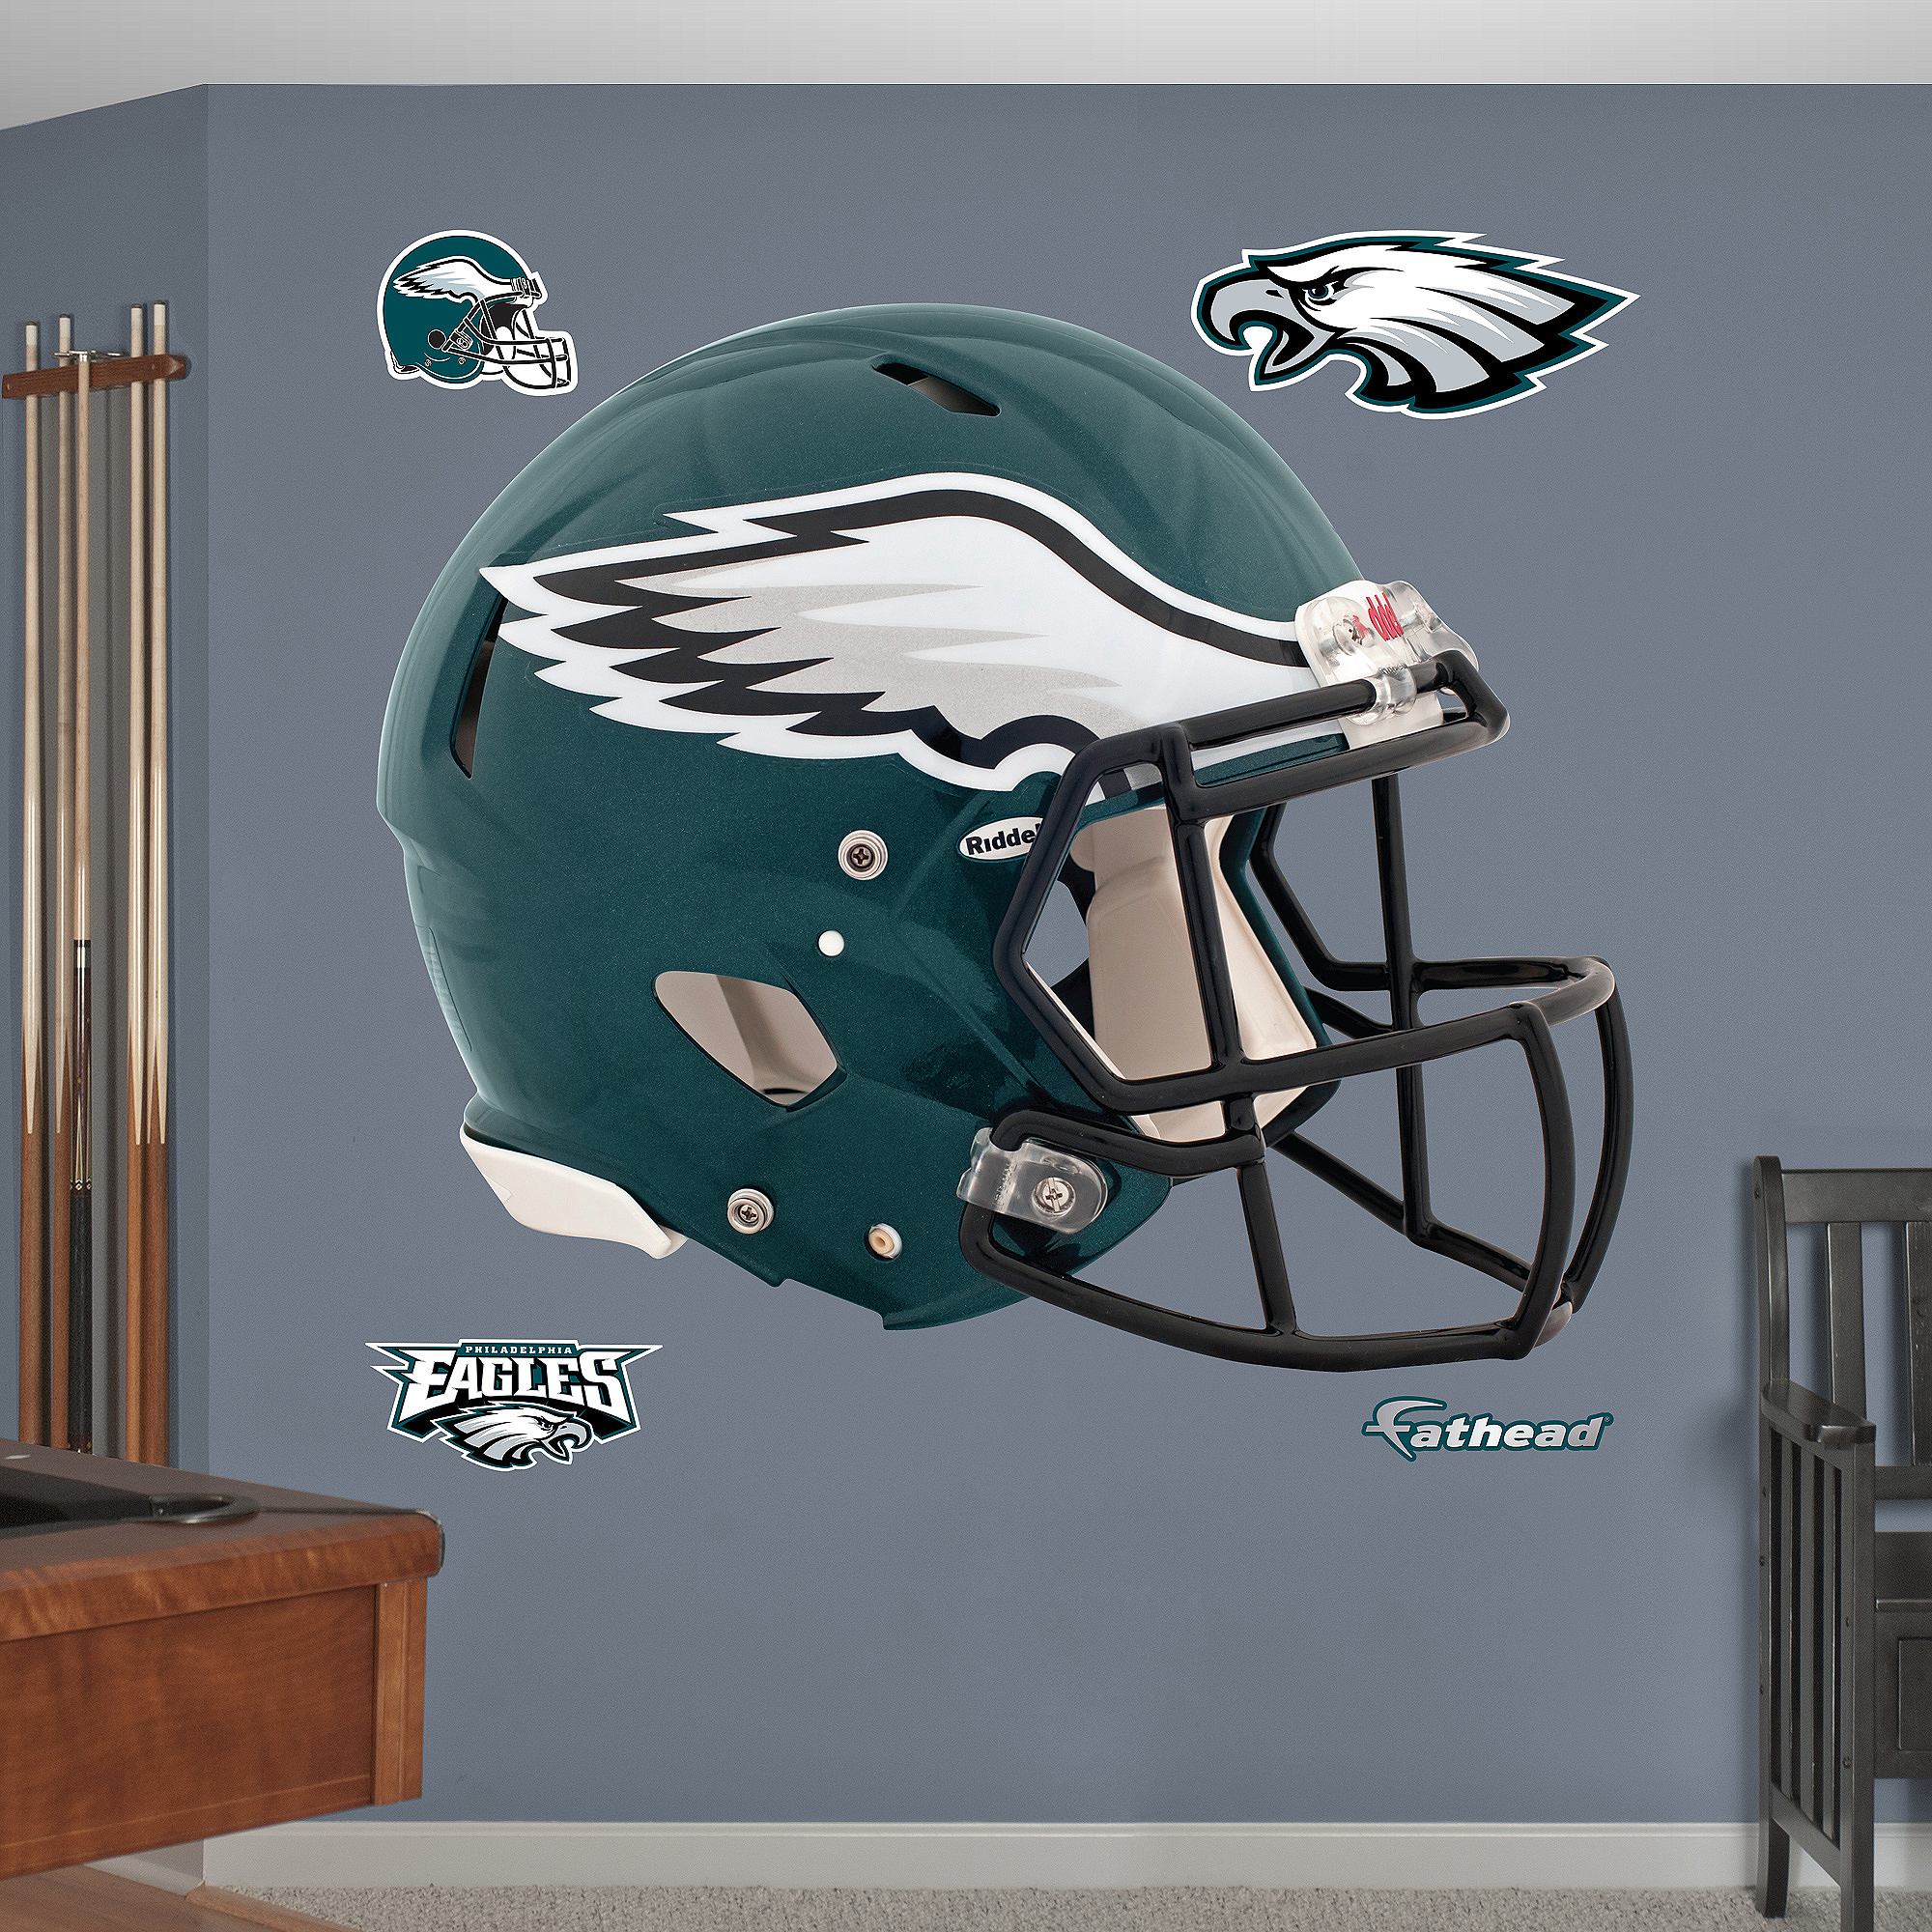 Philadelphia Eagles 2012 Helmet